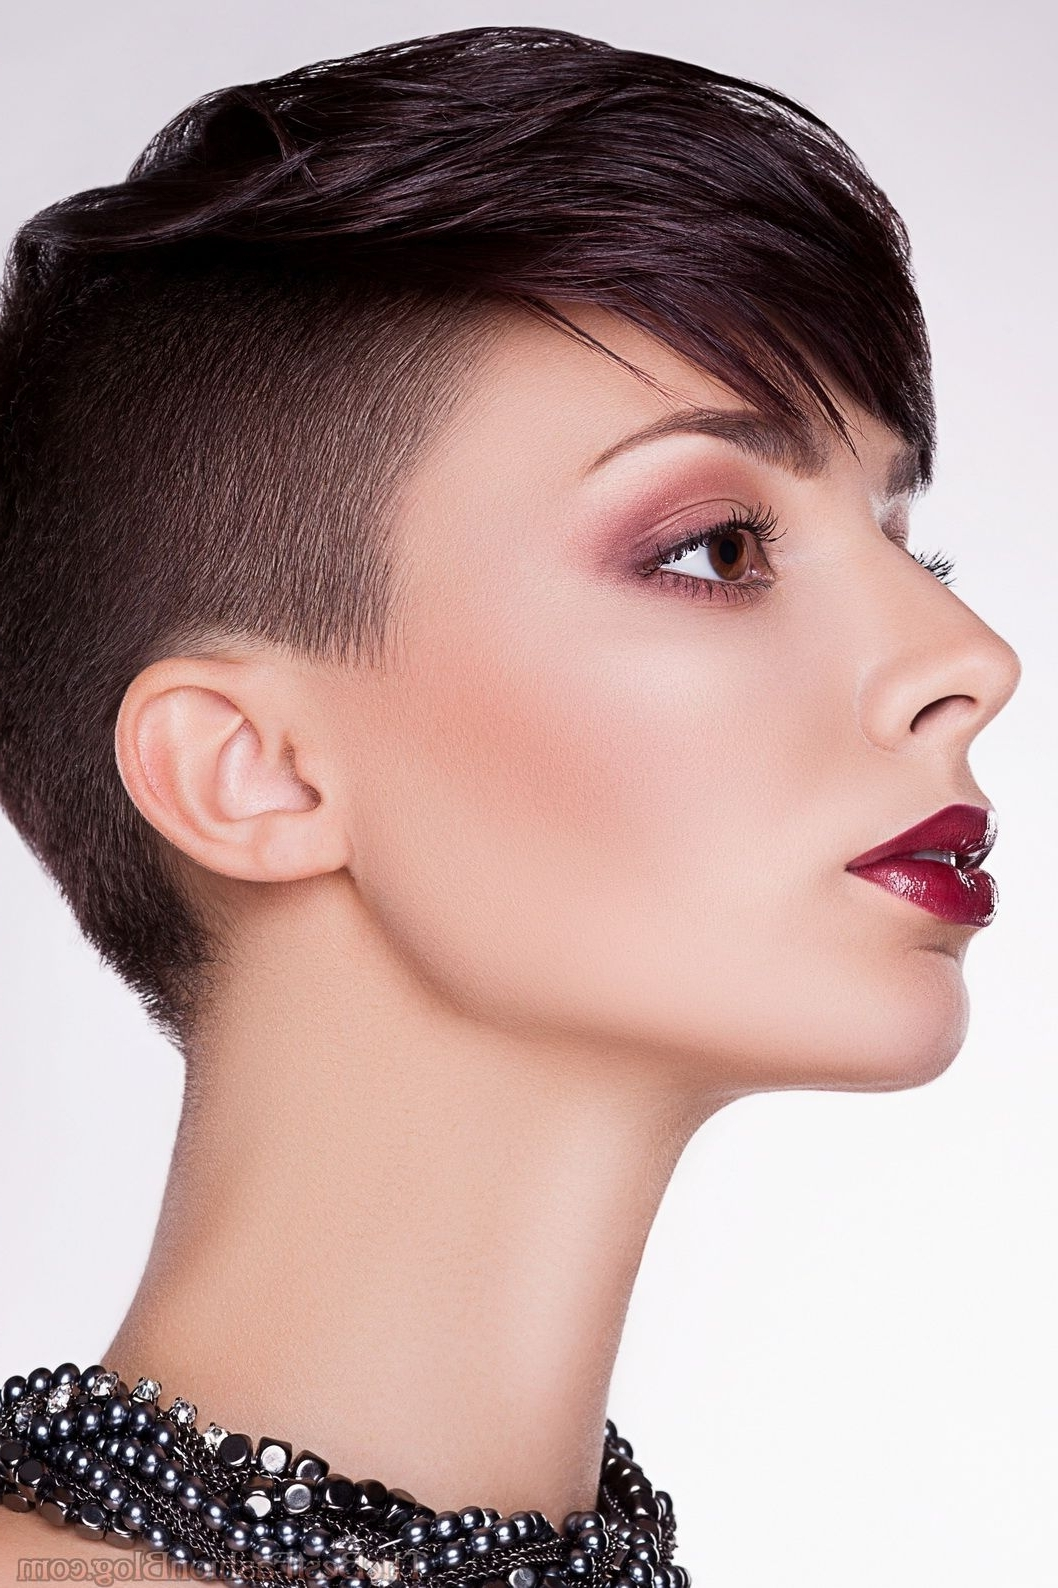 Pixie Haircuts For Women 2018 Pertaining To Newest Pixie Hairstyles With Shaved Sides (View 4 of 15)